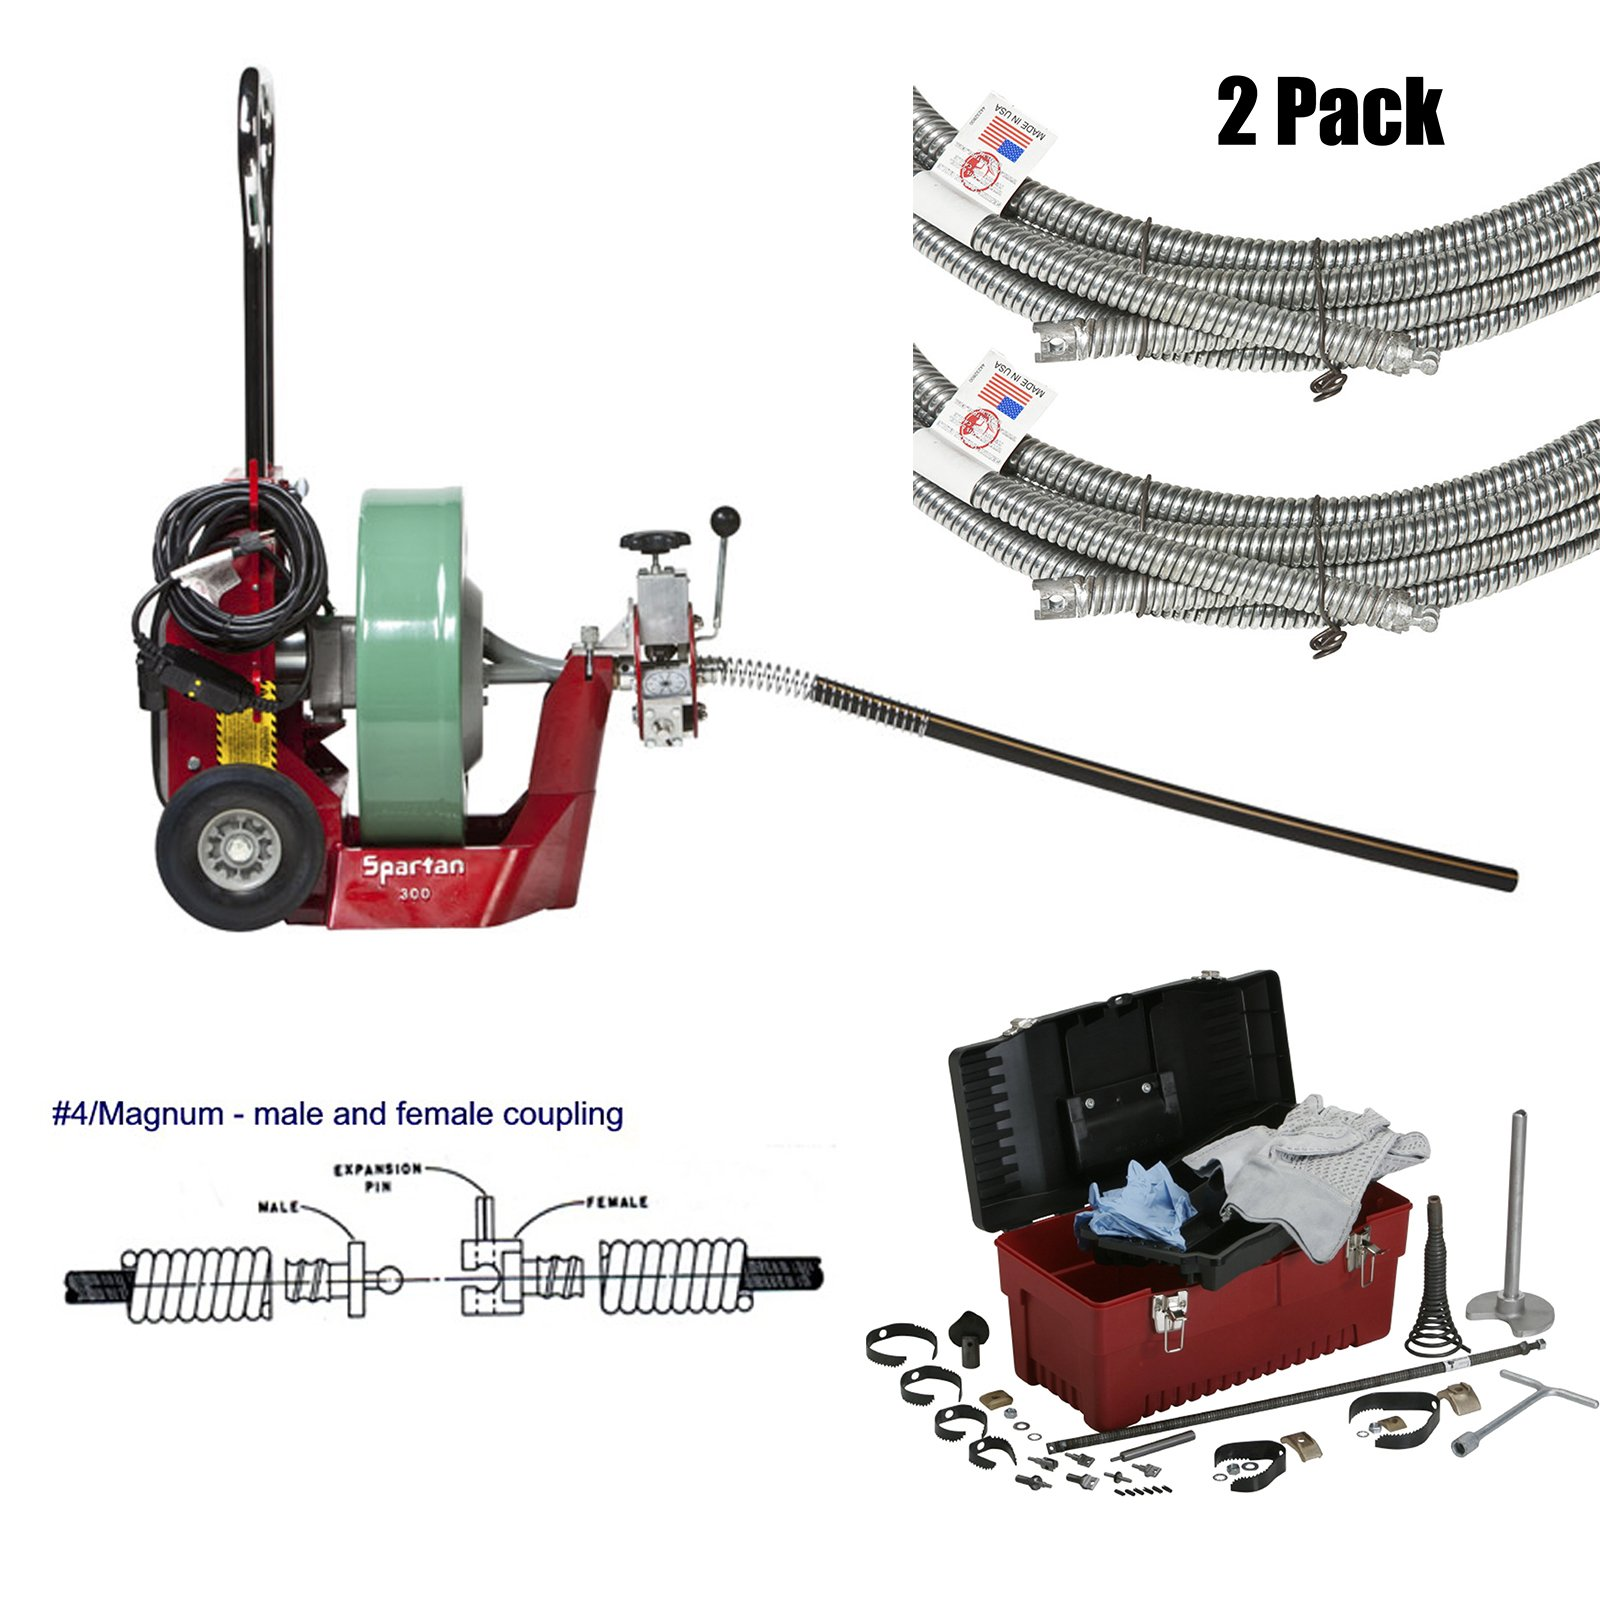 Spartan Tool 300 Cable Pipe Drain Machine with 50'x.55'' Pipe Cleaning Cable and 0.55'' Magnum Tool Box and Cutter Kit